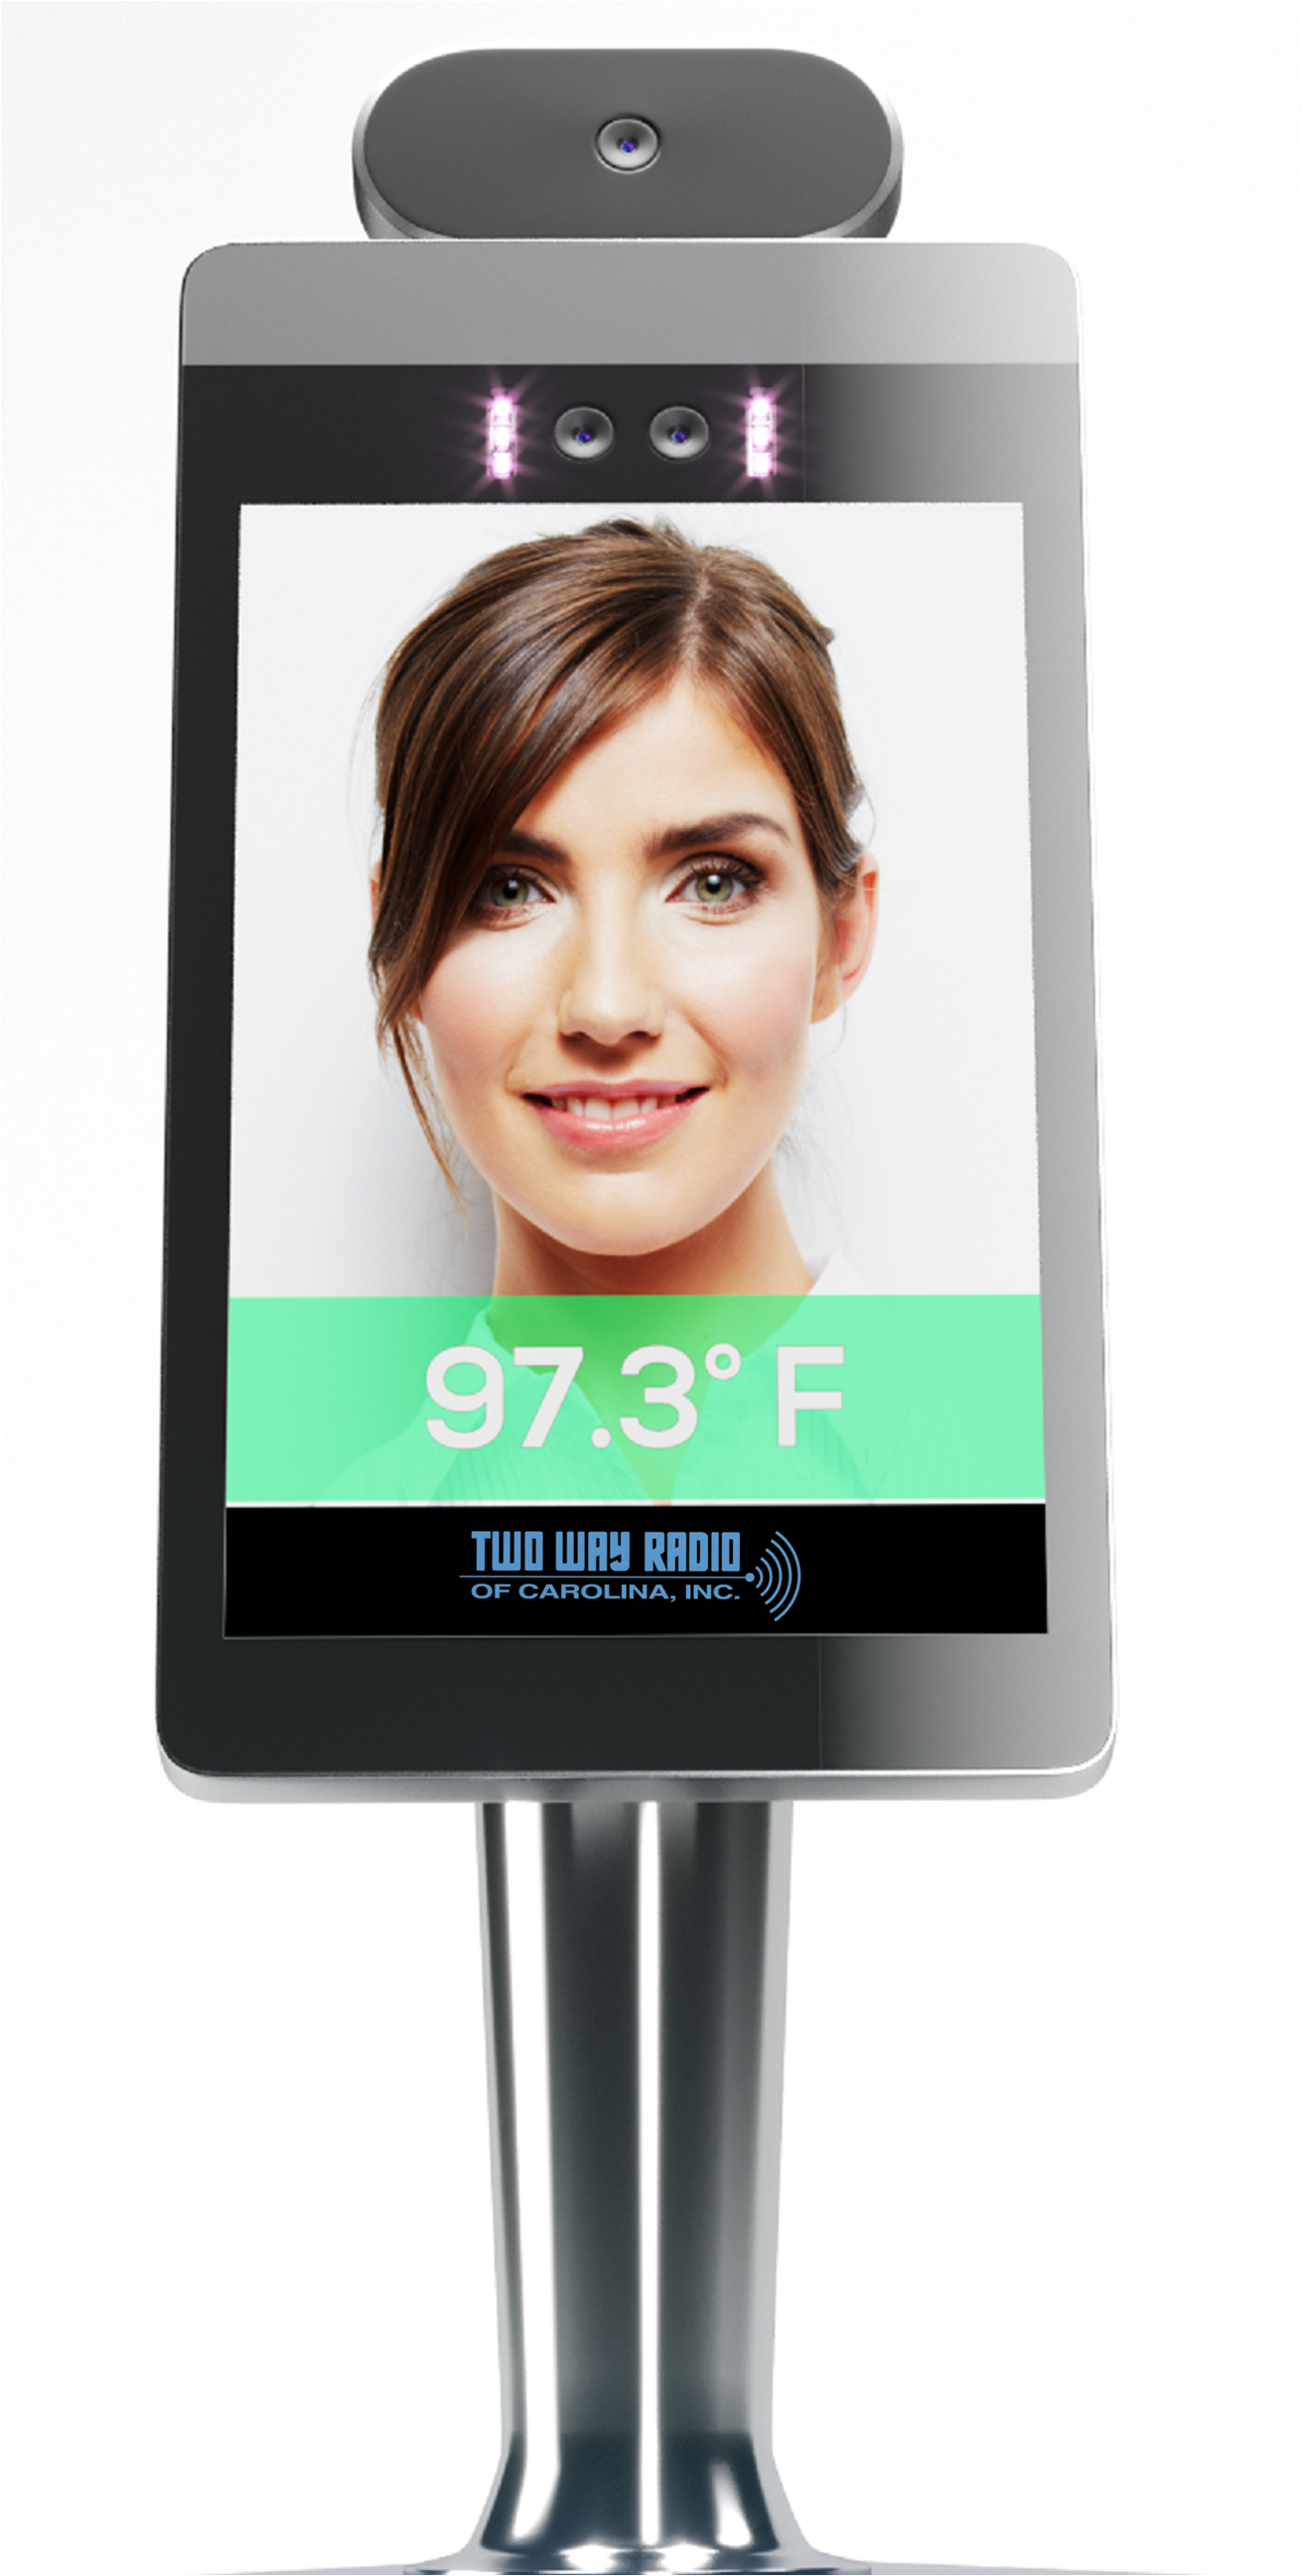 AUTOMATED TEMPERATURE KIOSK